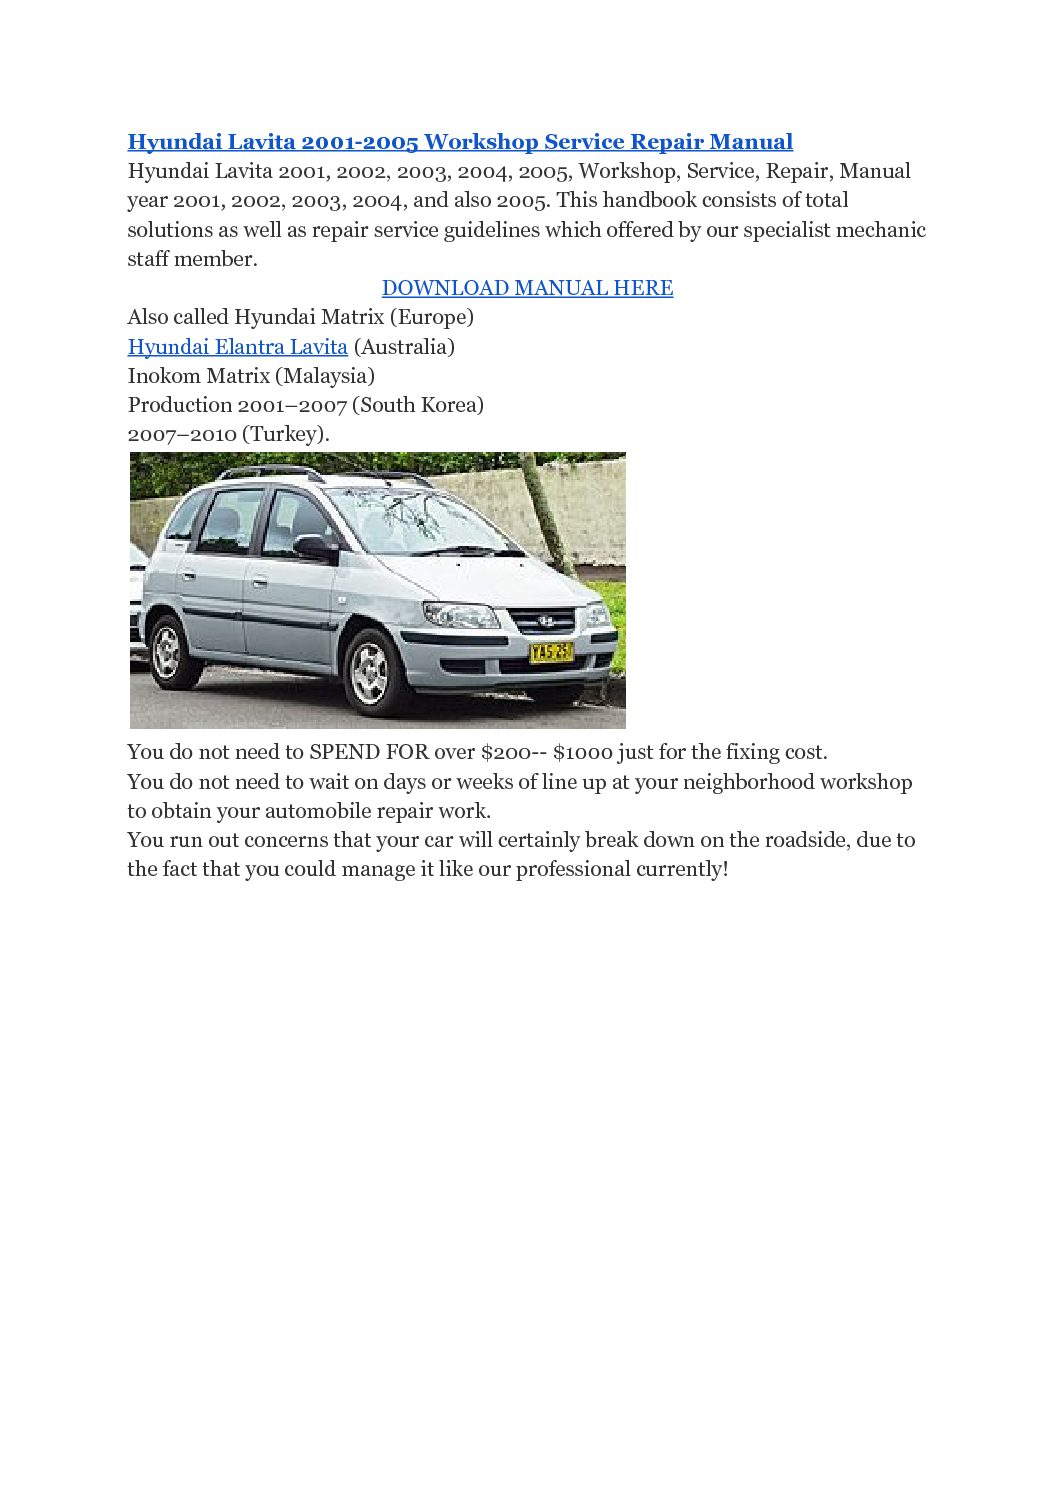 Hyundai Lavita 2001-2005 Workshop Service Repair Manual